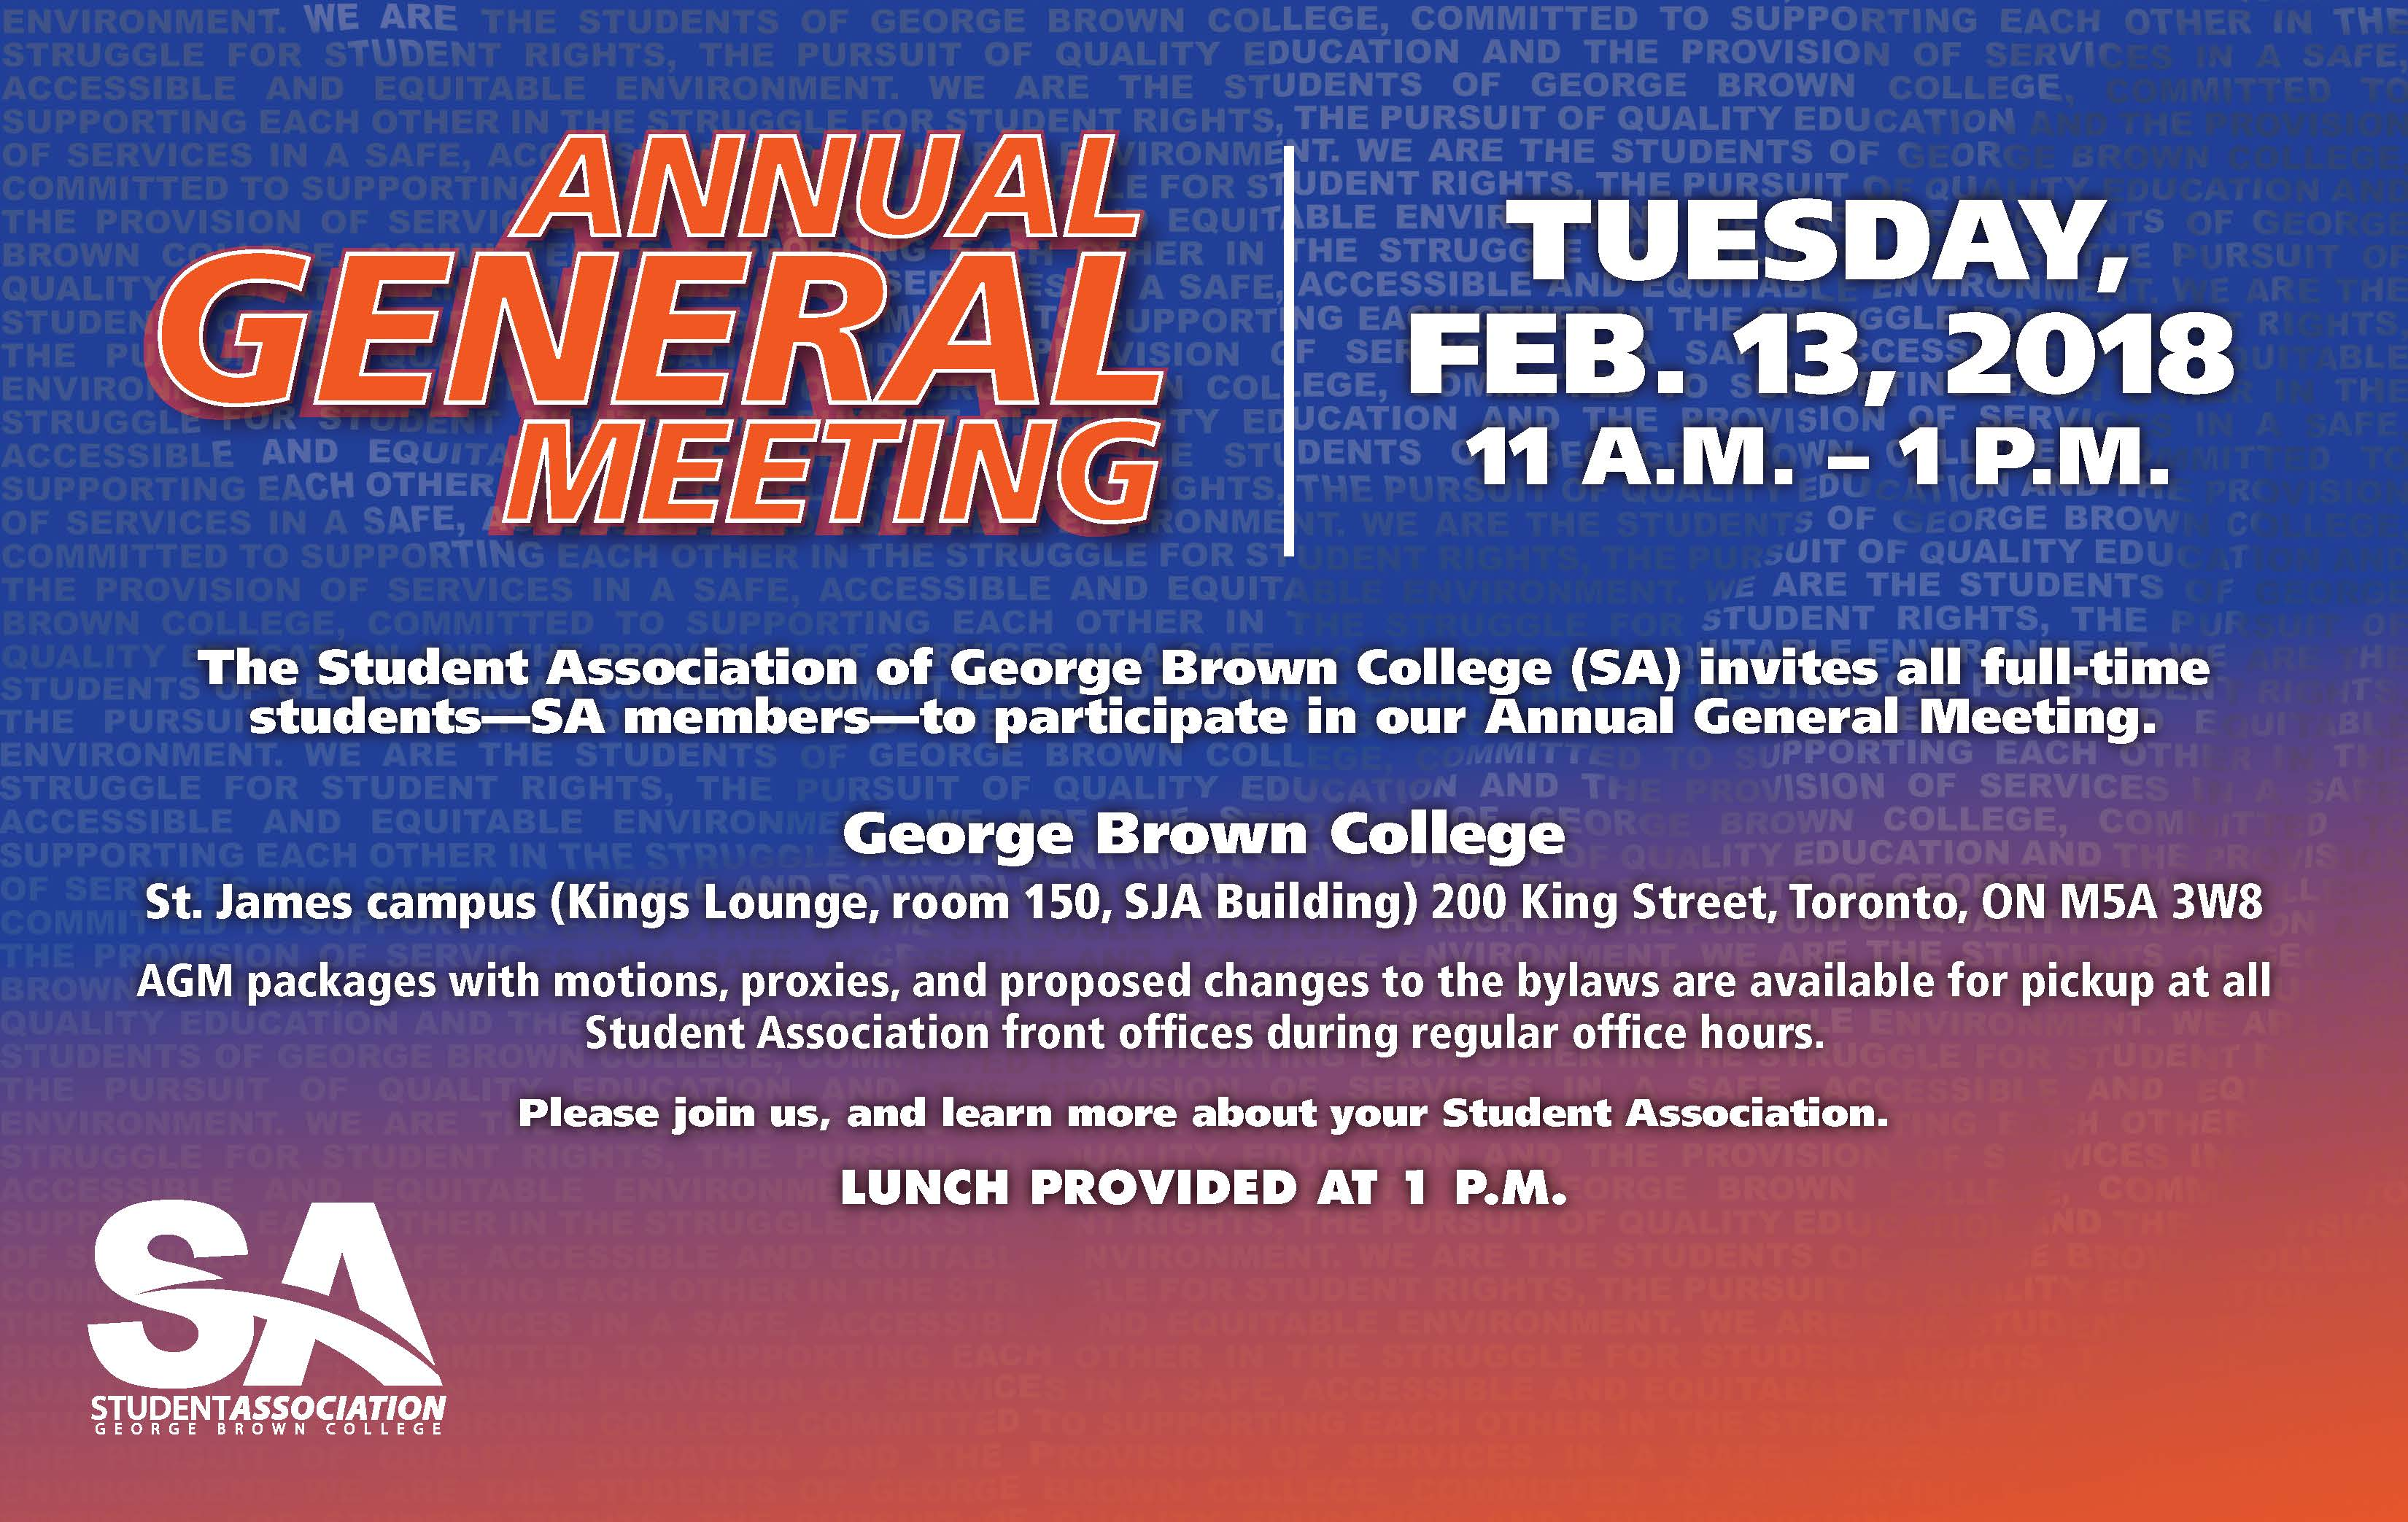 Tuesday, Feb. 13, 2018 11 a.m. to 1 p.m. (Lunch provided at 1 p.m.) George Brown College Kings Lounge, St. James A Building, room 150 200 King St. East, Toronto, ON M5A 3W8 The Student Association of George Brown College (SA) invites all full-time students—SA members—to participate in our Annual General Meeting. The Annual General meeting package with motions, proxy forms, and proposed changes to the bylaws will be available for pickup at all Student Association front offices during regular office hours. Please join us, and learn more about your Student Association.